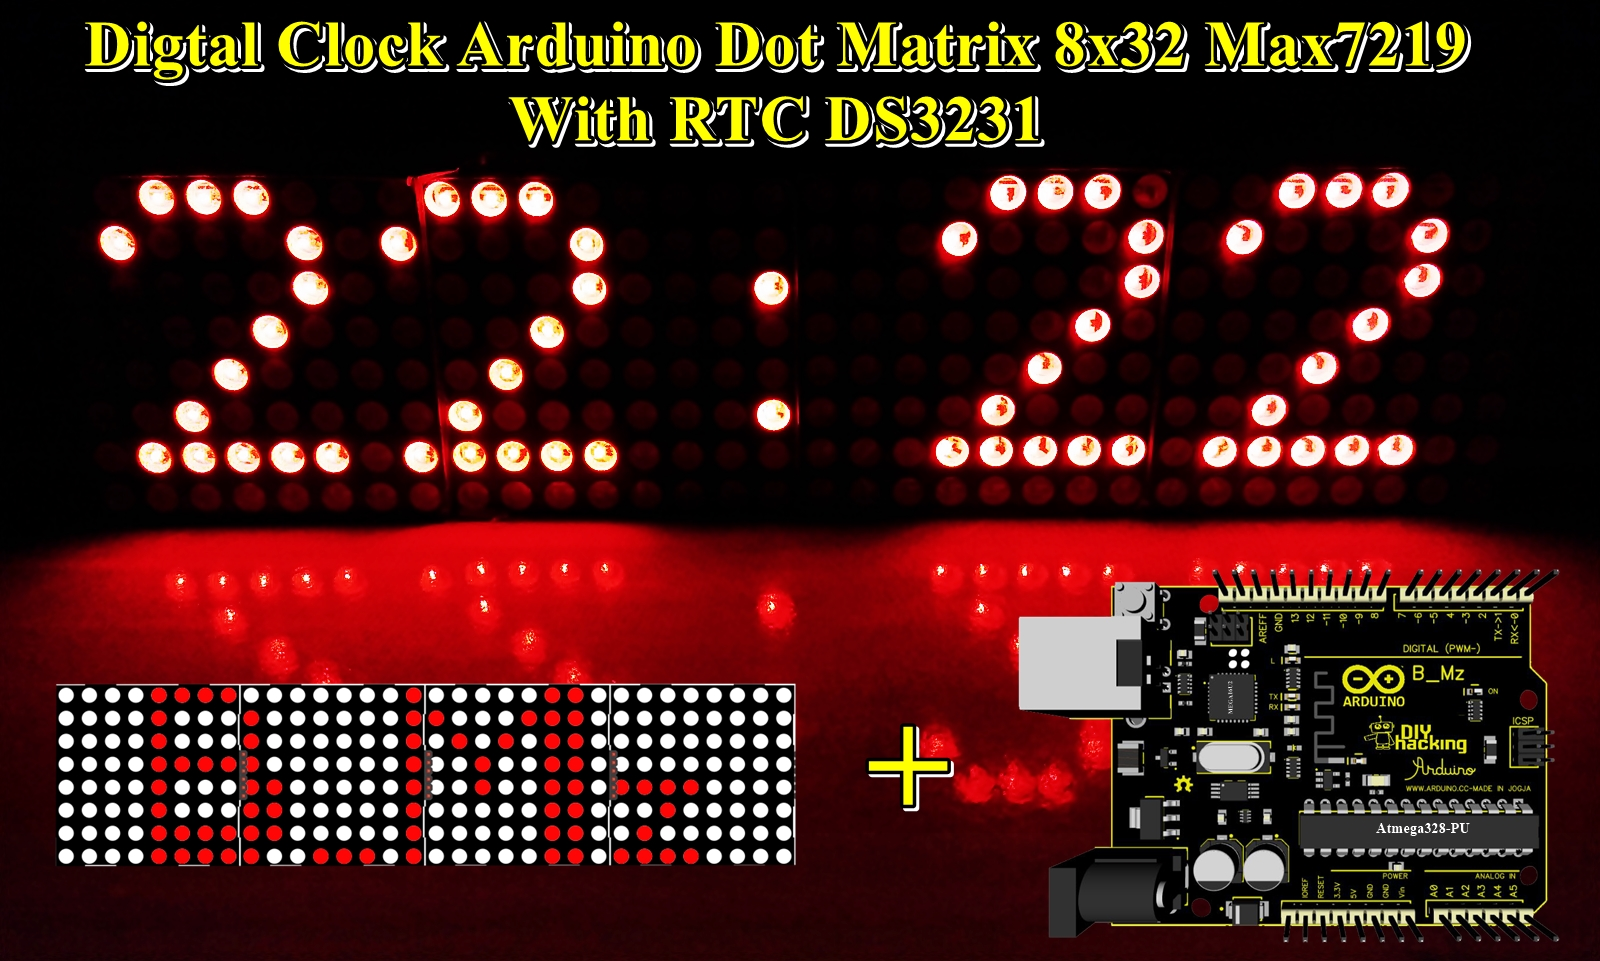 DIY Digital Clock Arduino Dot Matrix 8x32 Max7219 With RTC ...